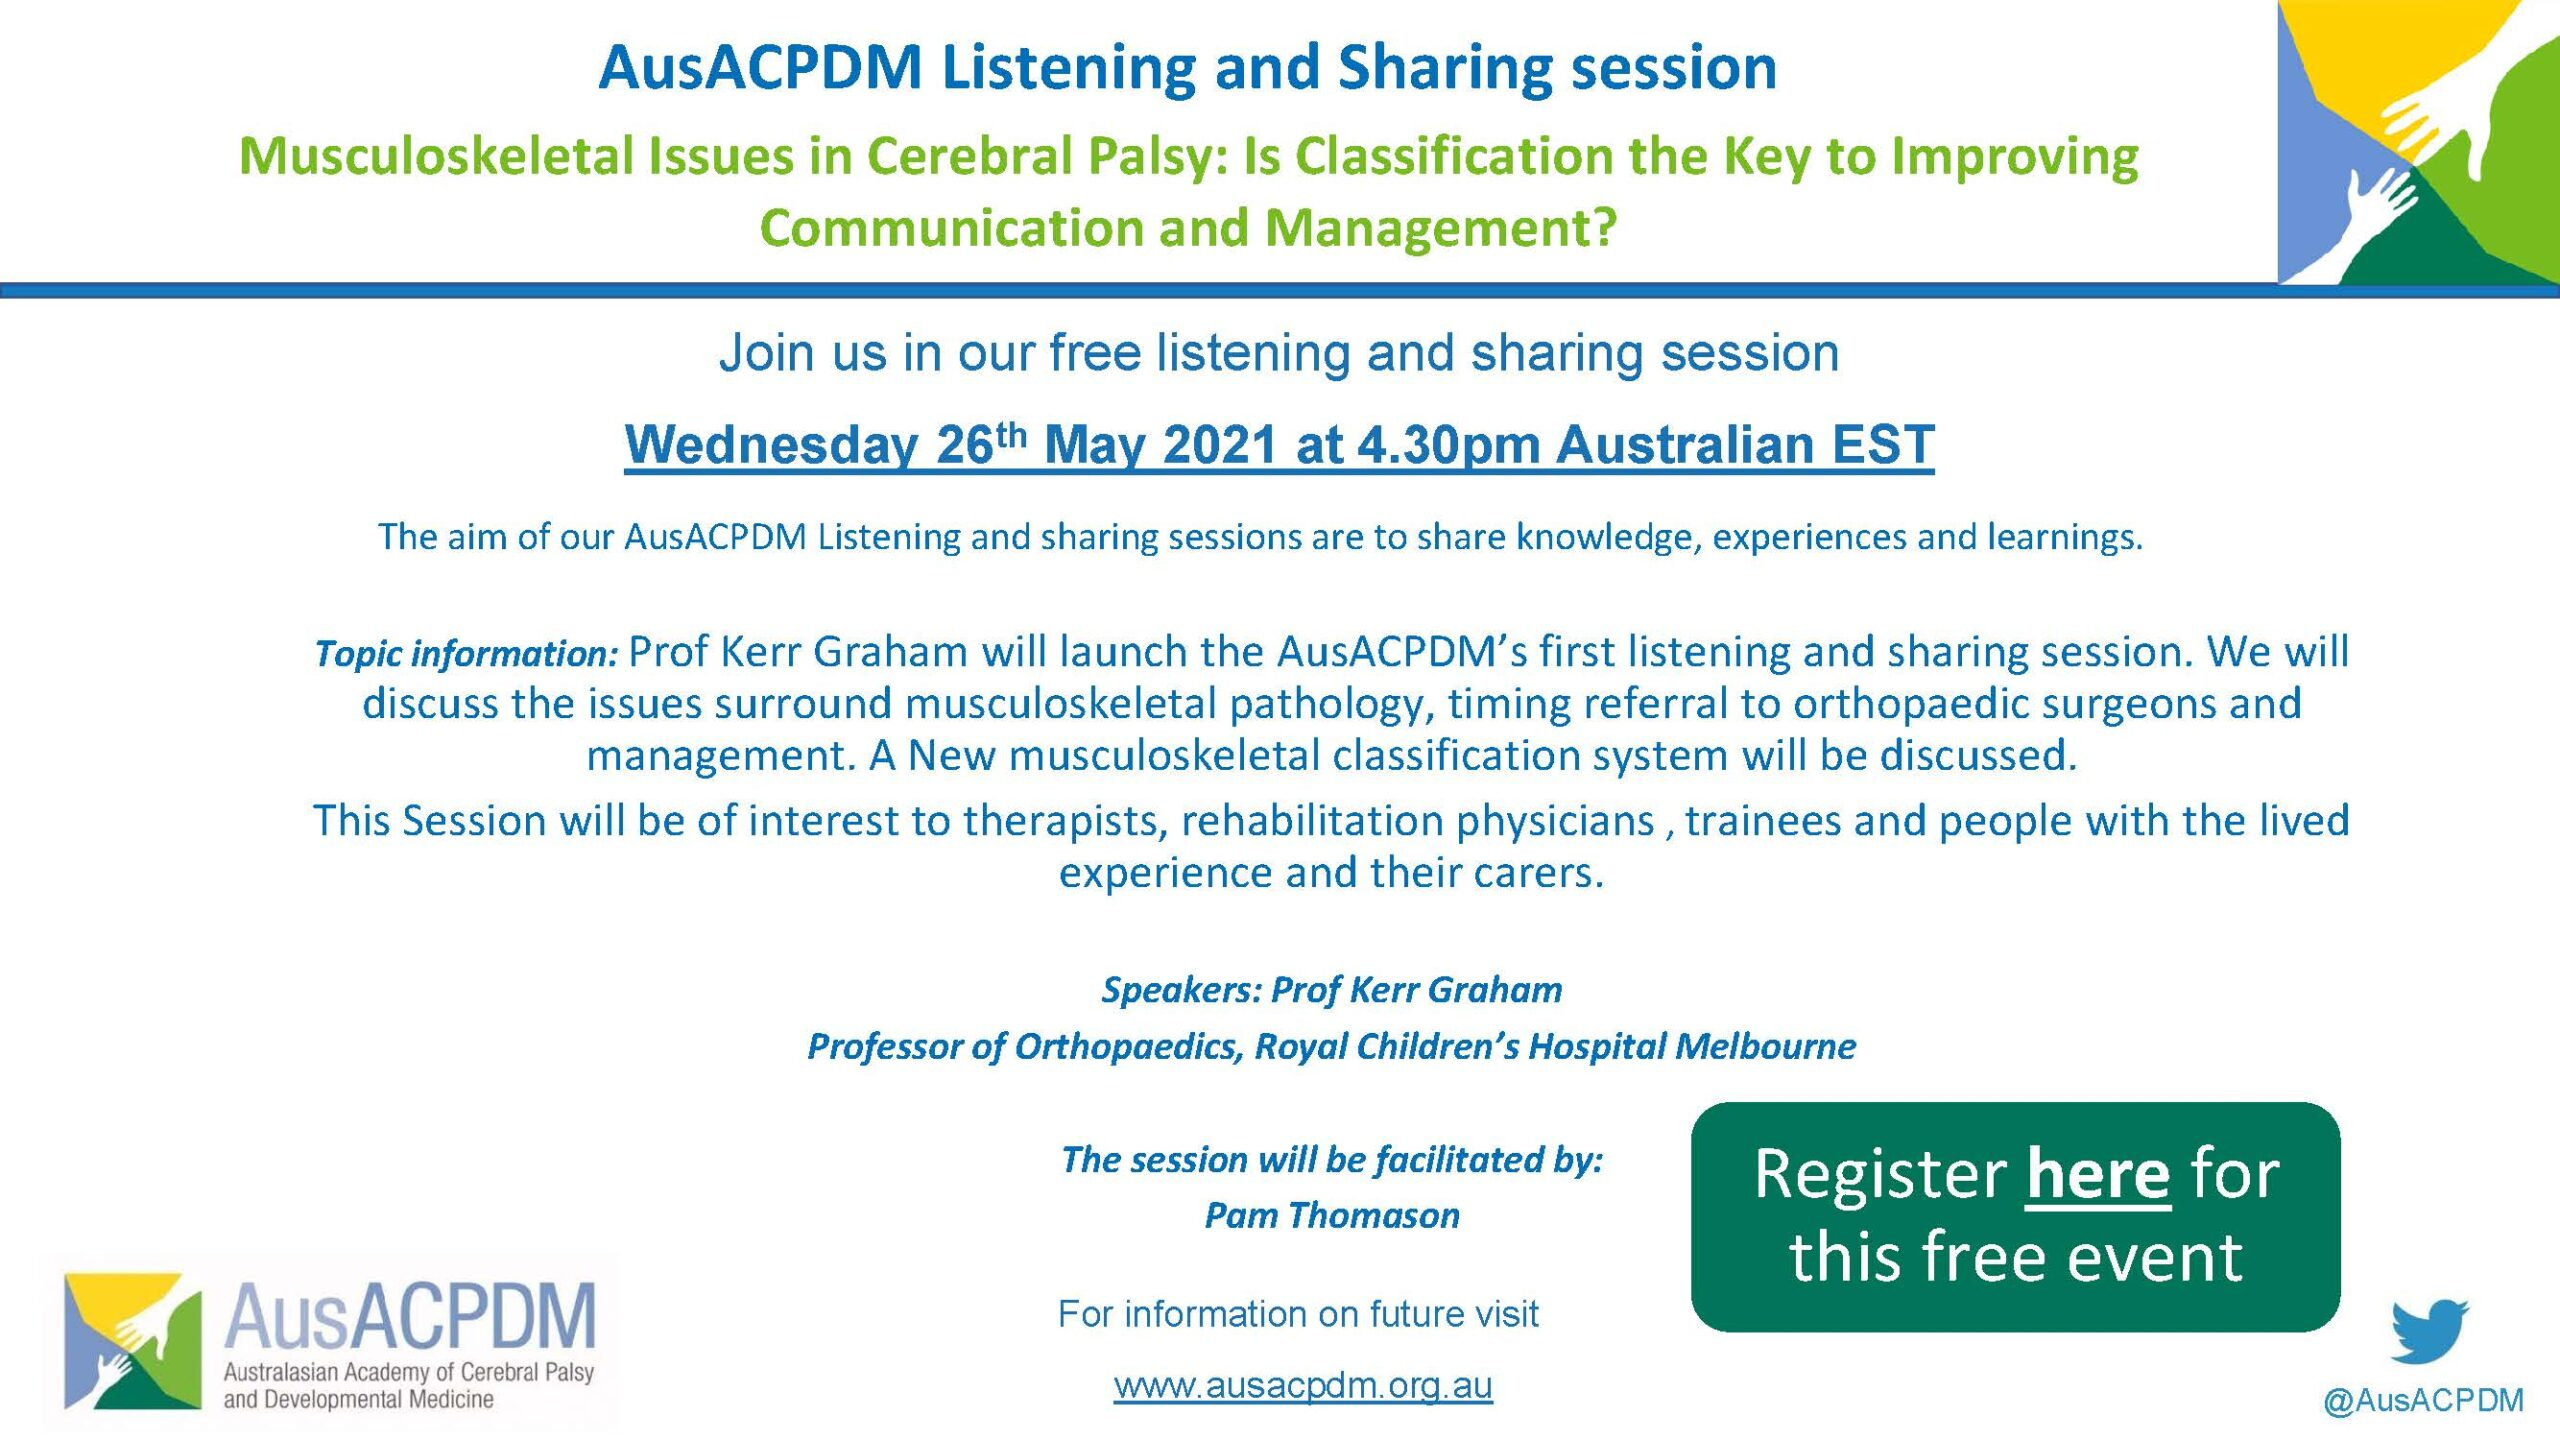 26th May: AusACPDM Listening and Sharing session